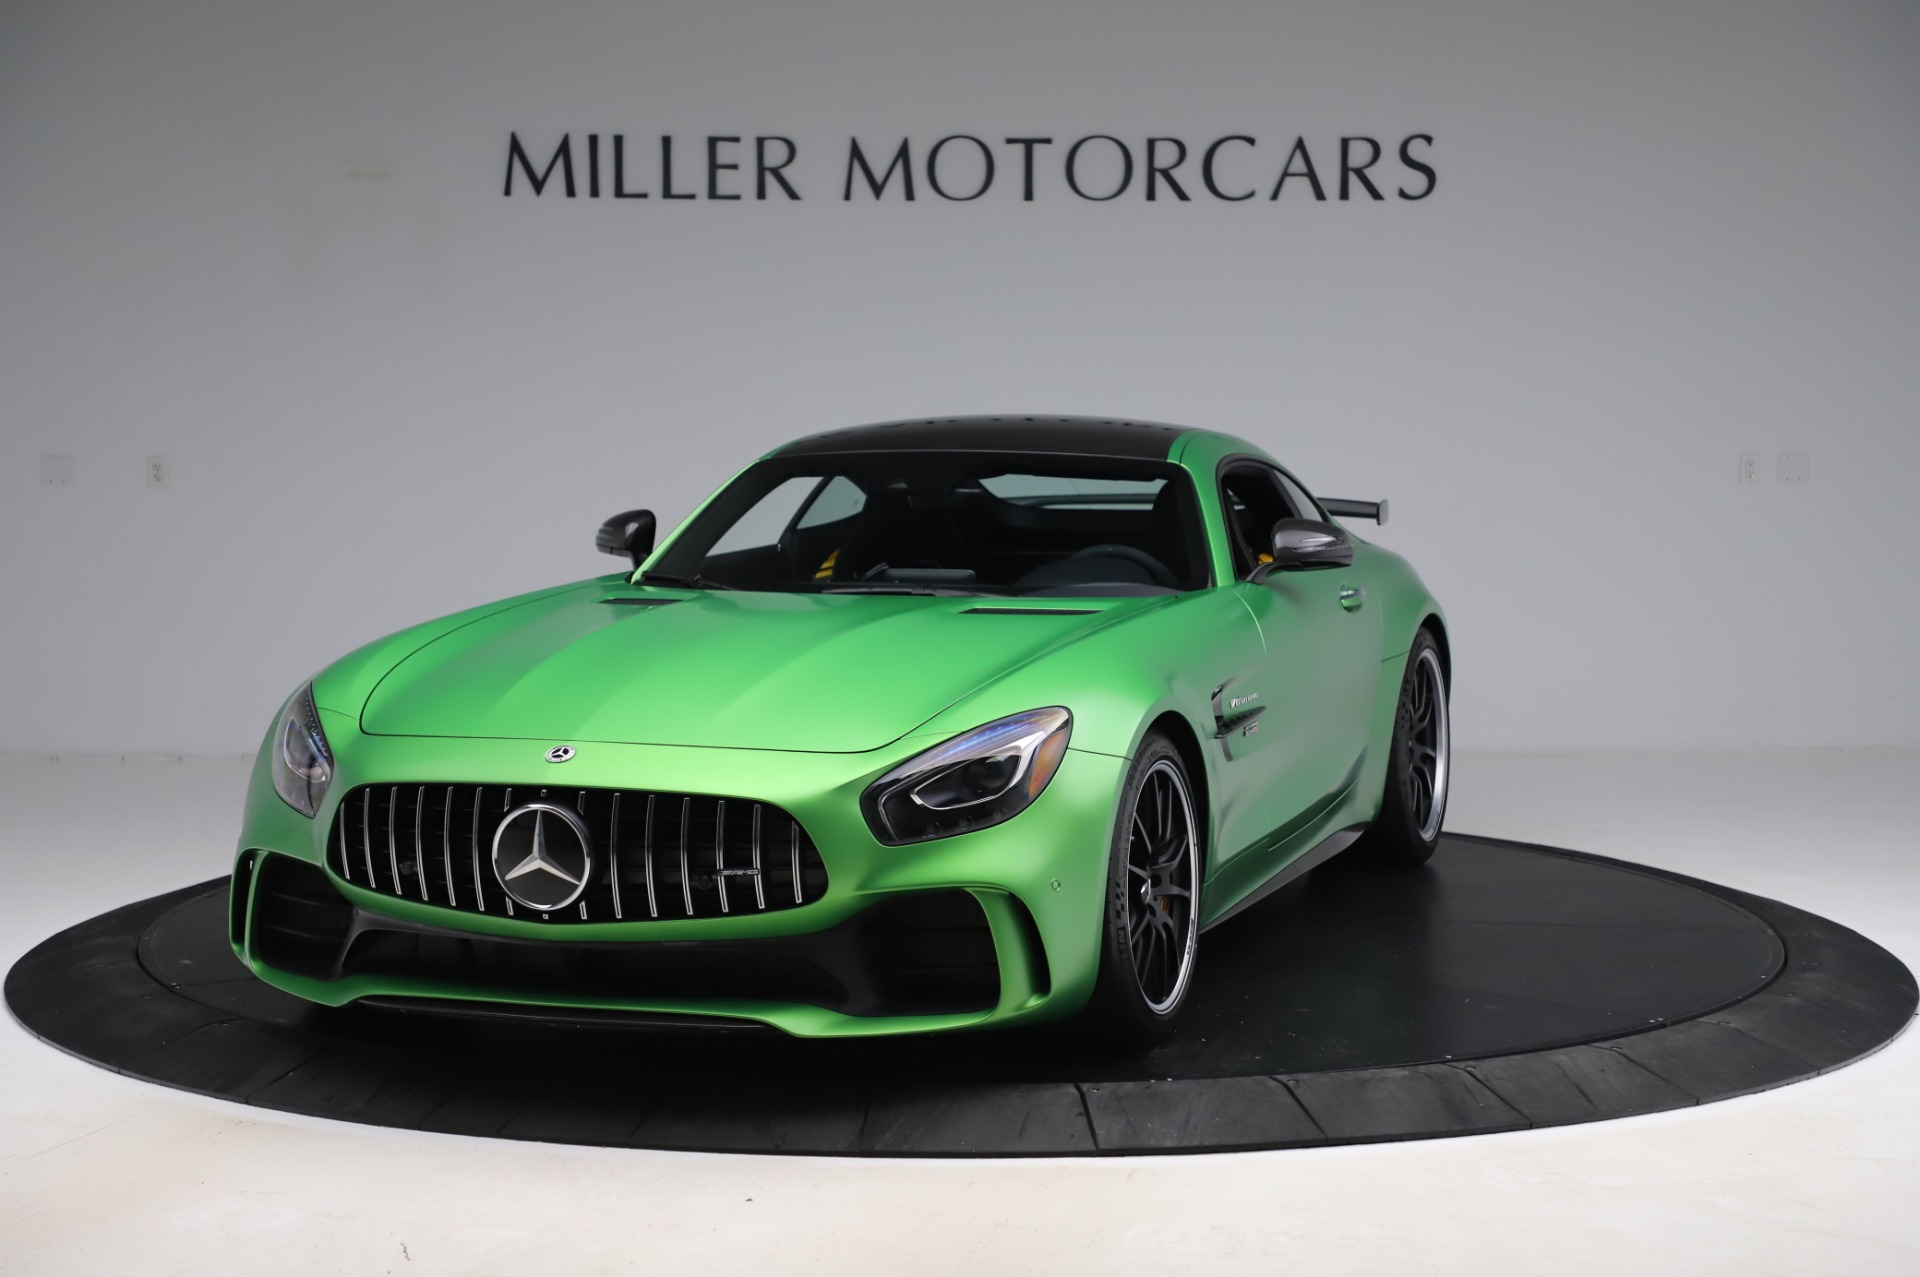 Used 2019 Mercedes-Benz AMG GT R for sale $155,900 at Bugatti of Greenwich in Greenwich CT 06830 1